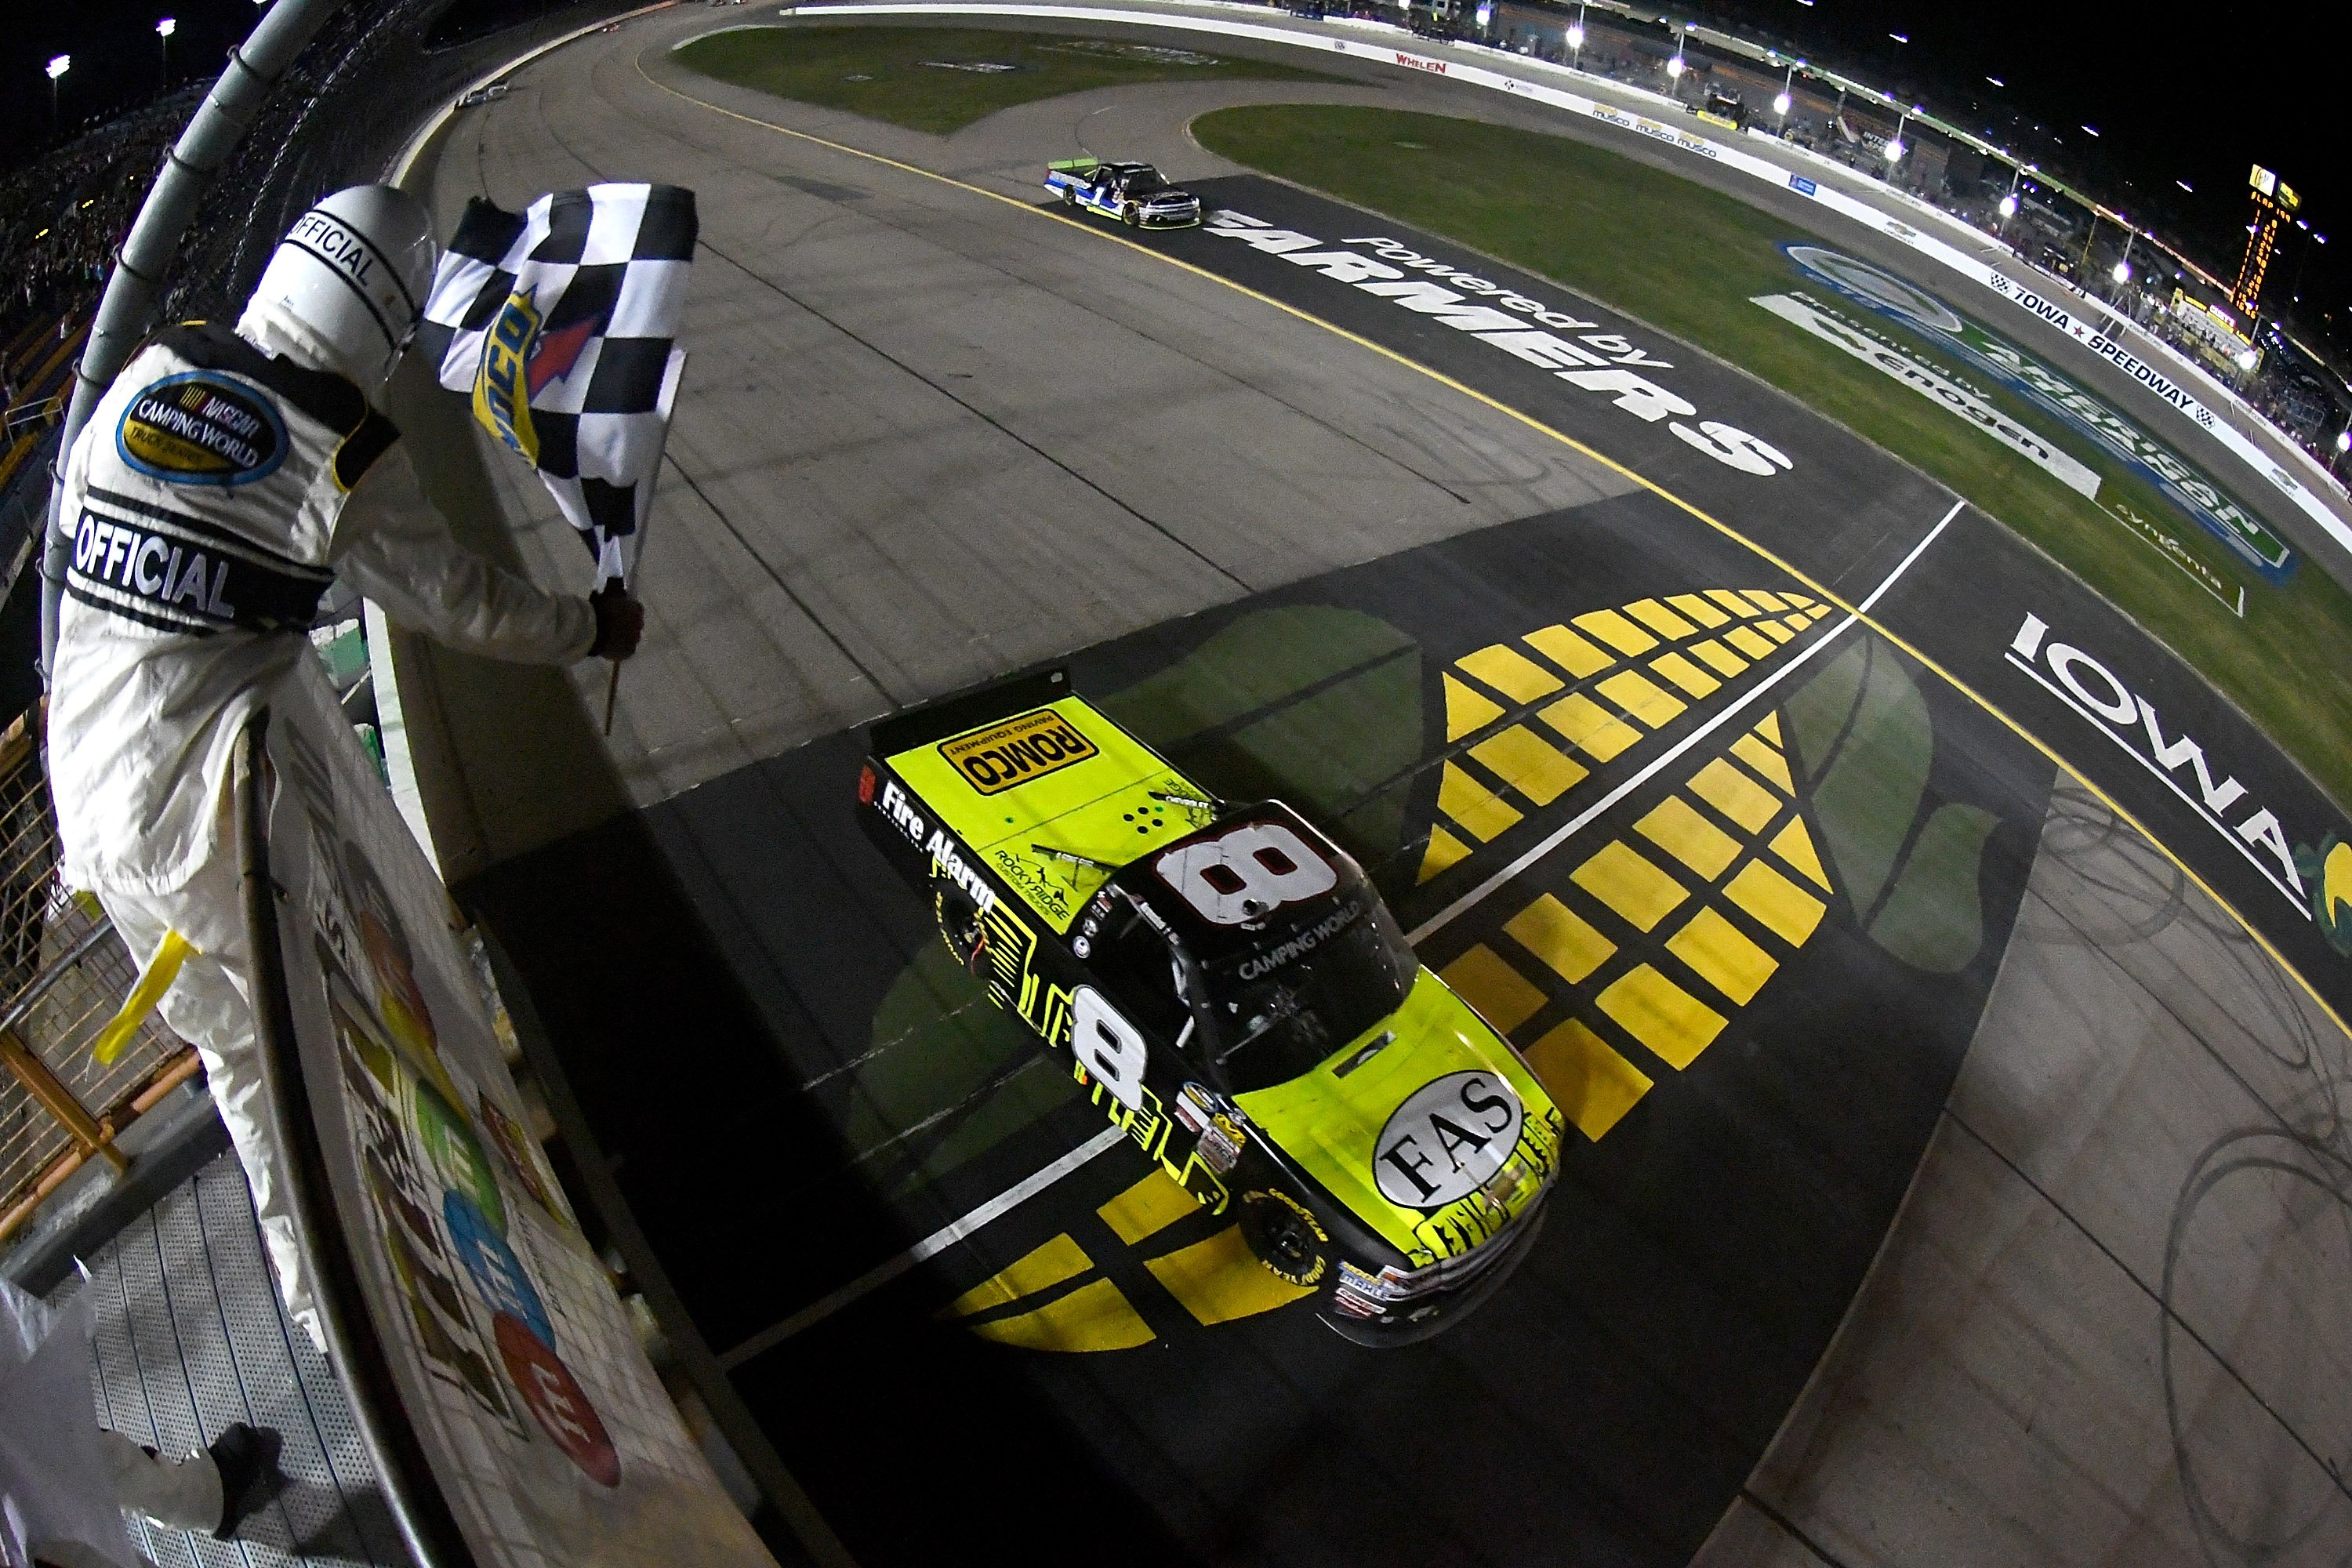 John Hunter Nemechek Iowa Speedway Truck Results - NCWTS